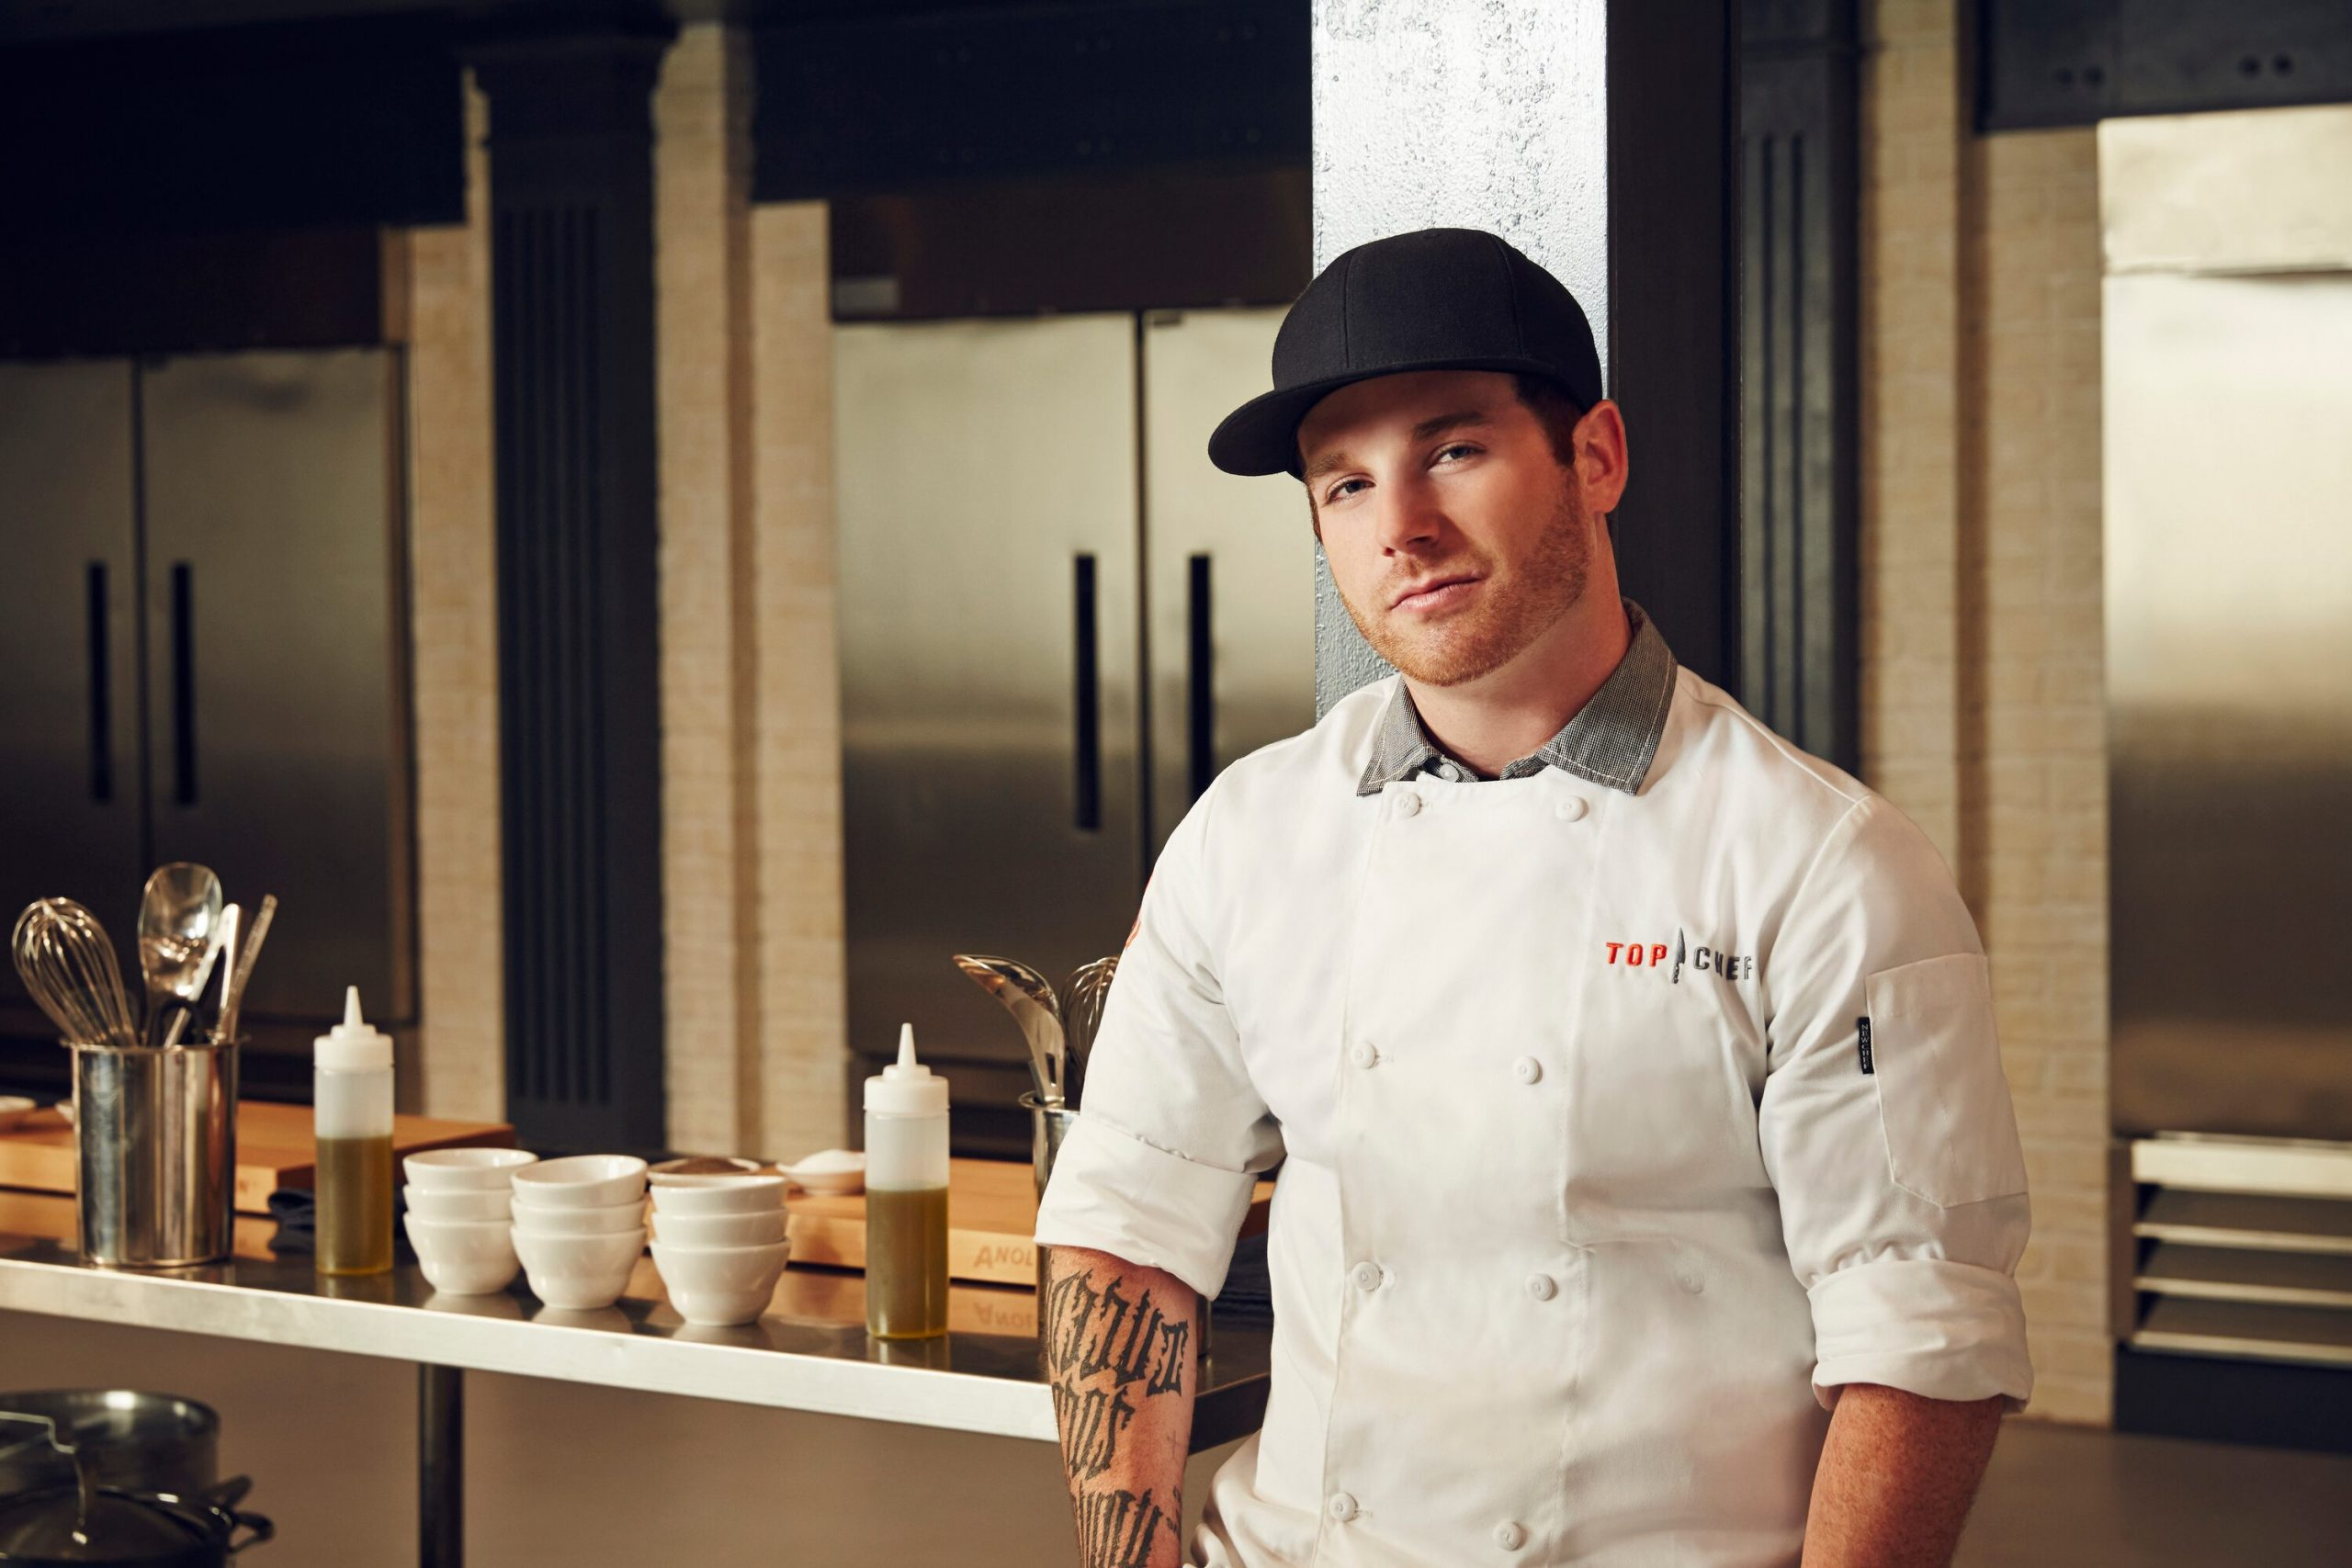 `` Top Chef  contestant Aaron Grissom, dies at age 34